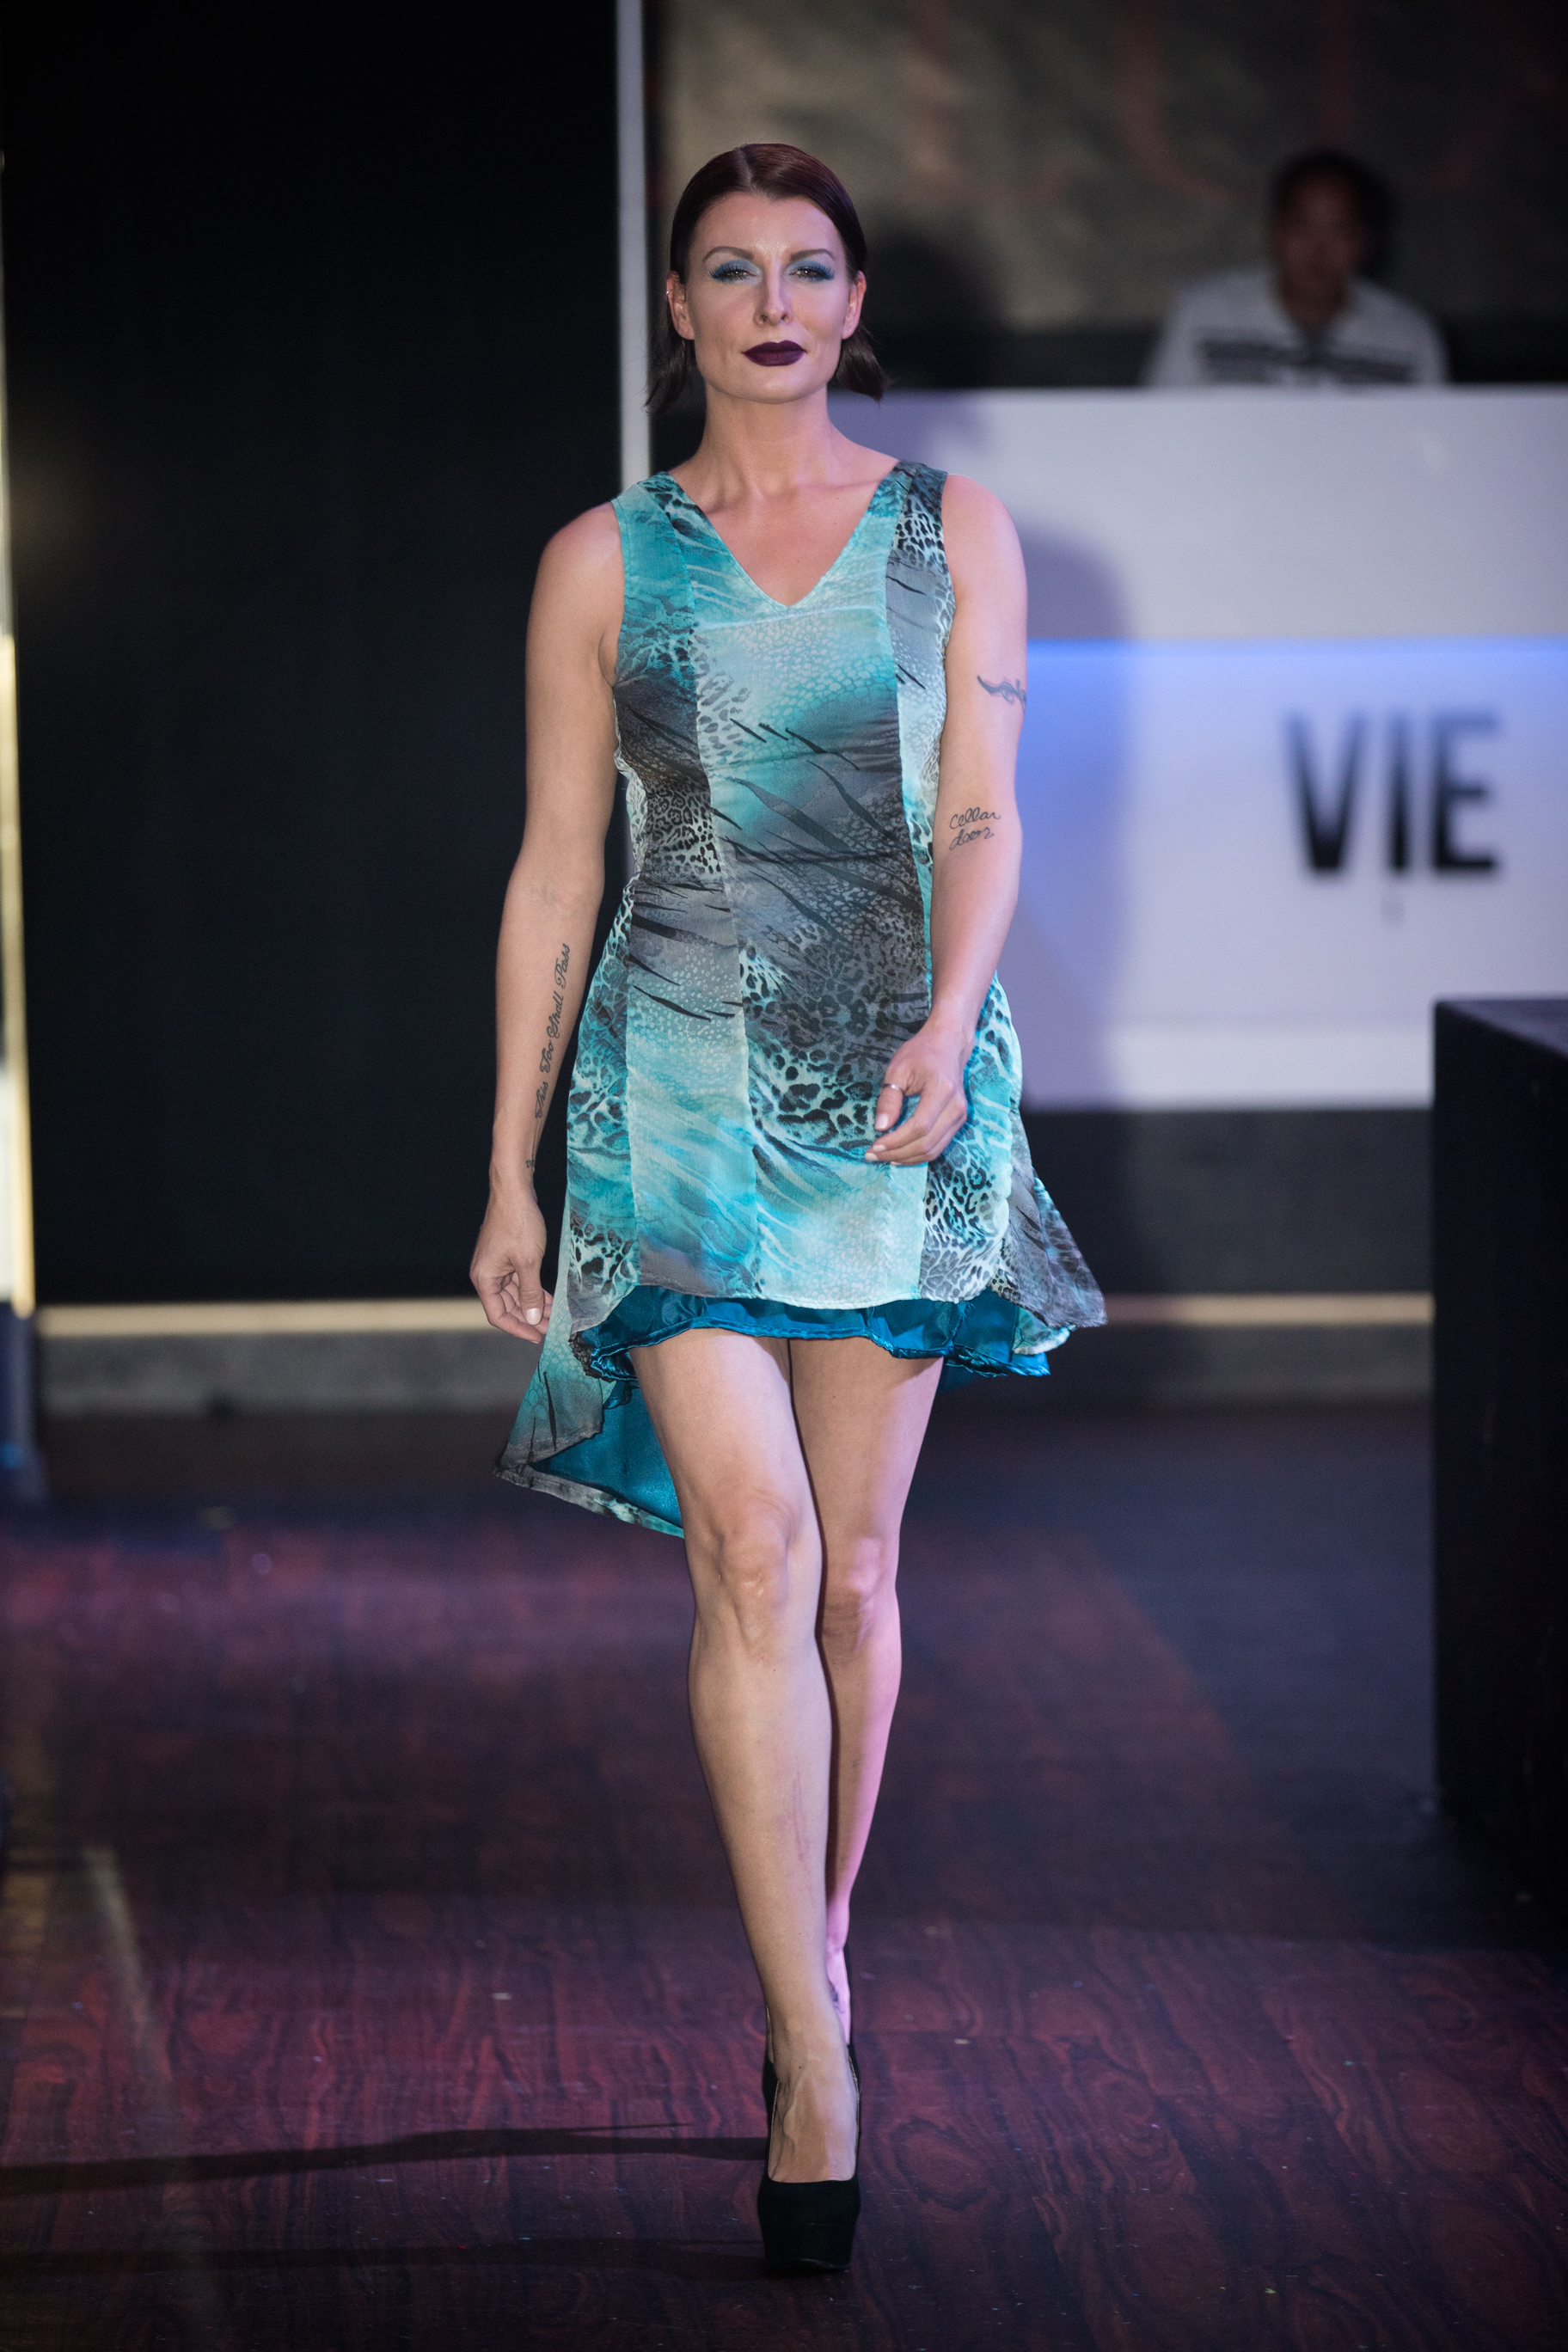 Alive Fashion Show - 027.jpg